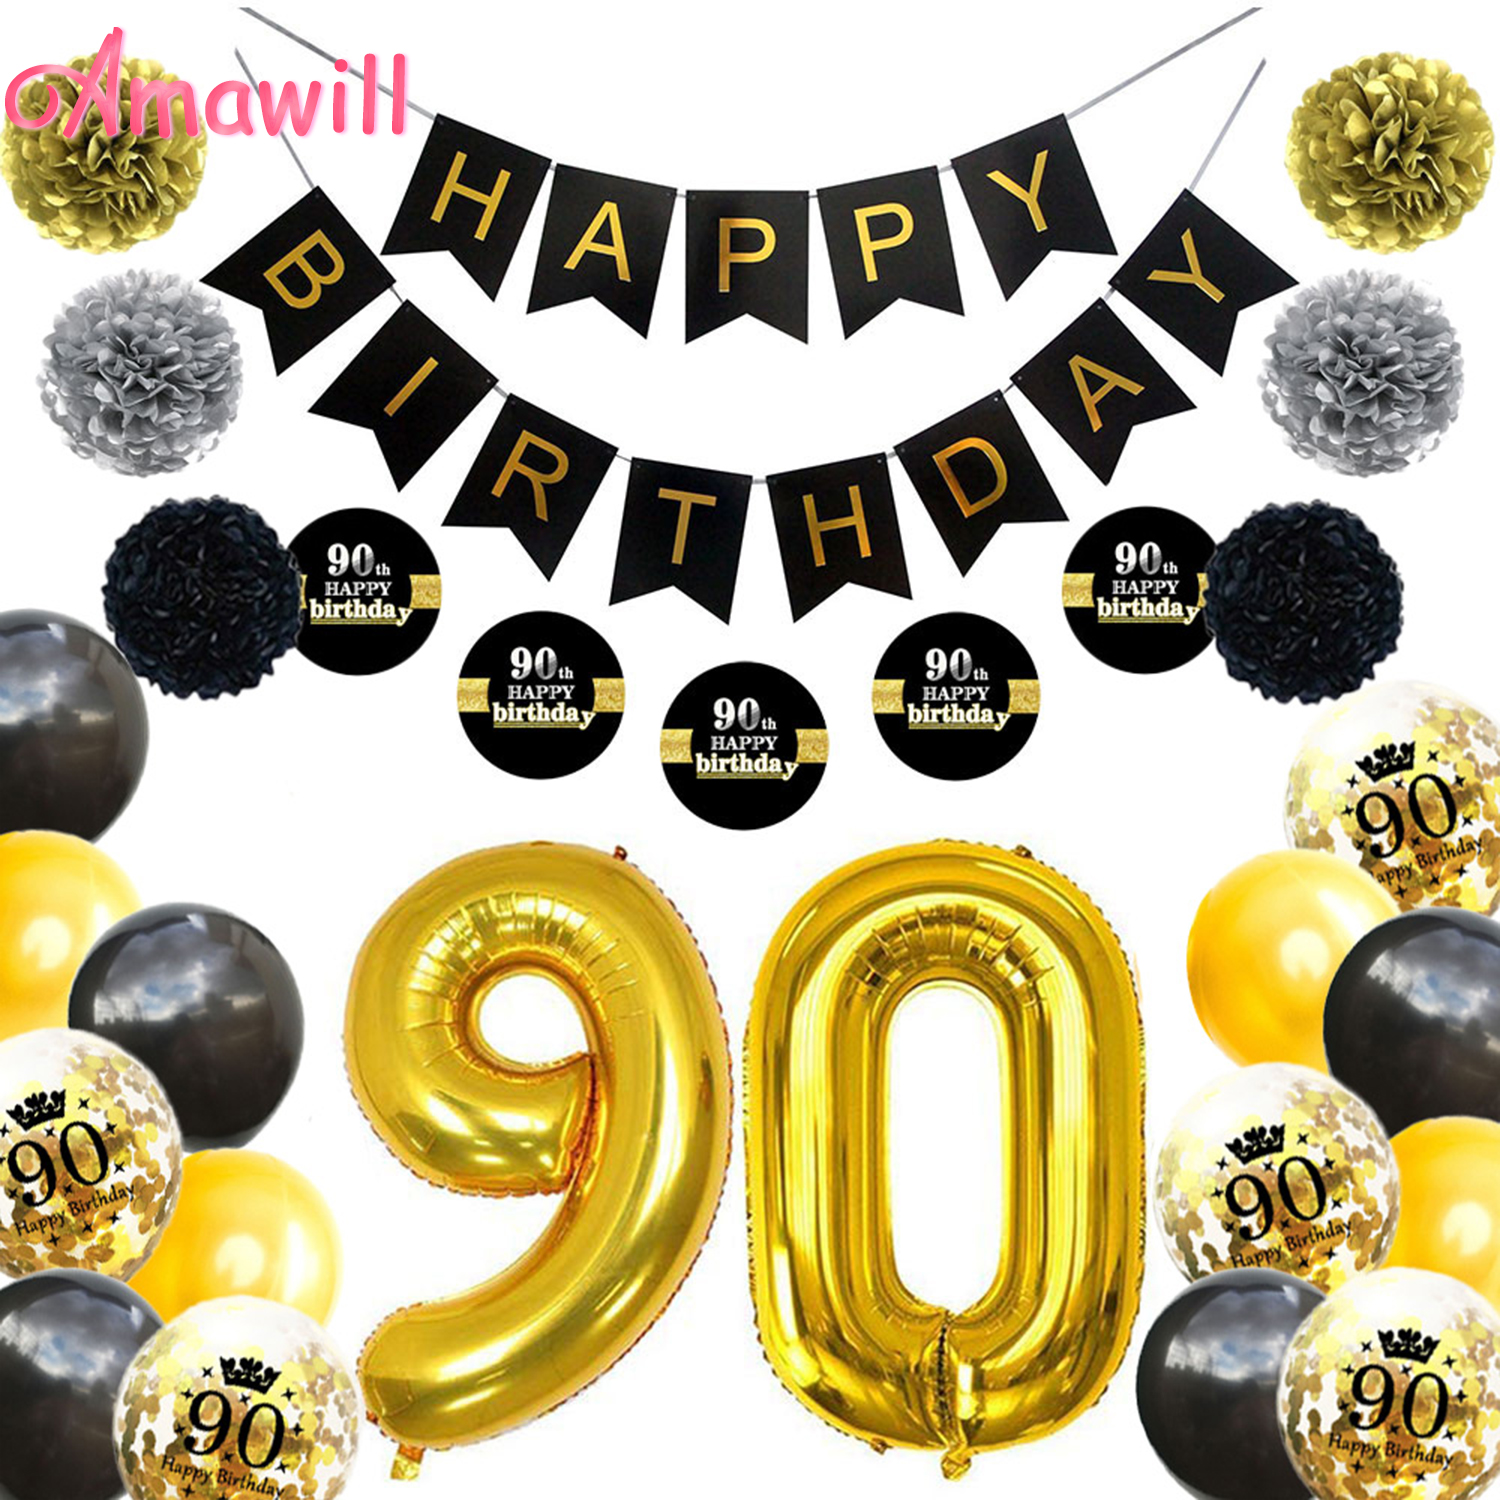 BIRTHDAY 5  BALLOONS LATEX DECORATION PARTY ANNIVERSARY 16TH-90TH WEDDING GIFT